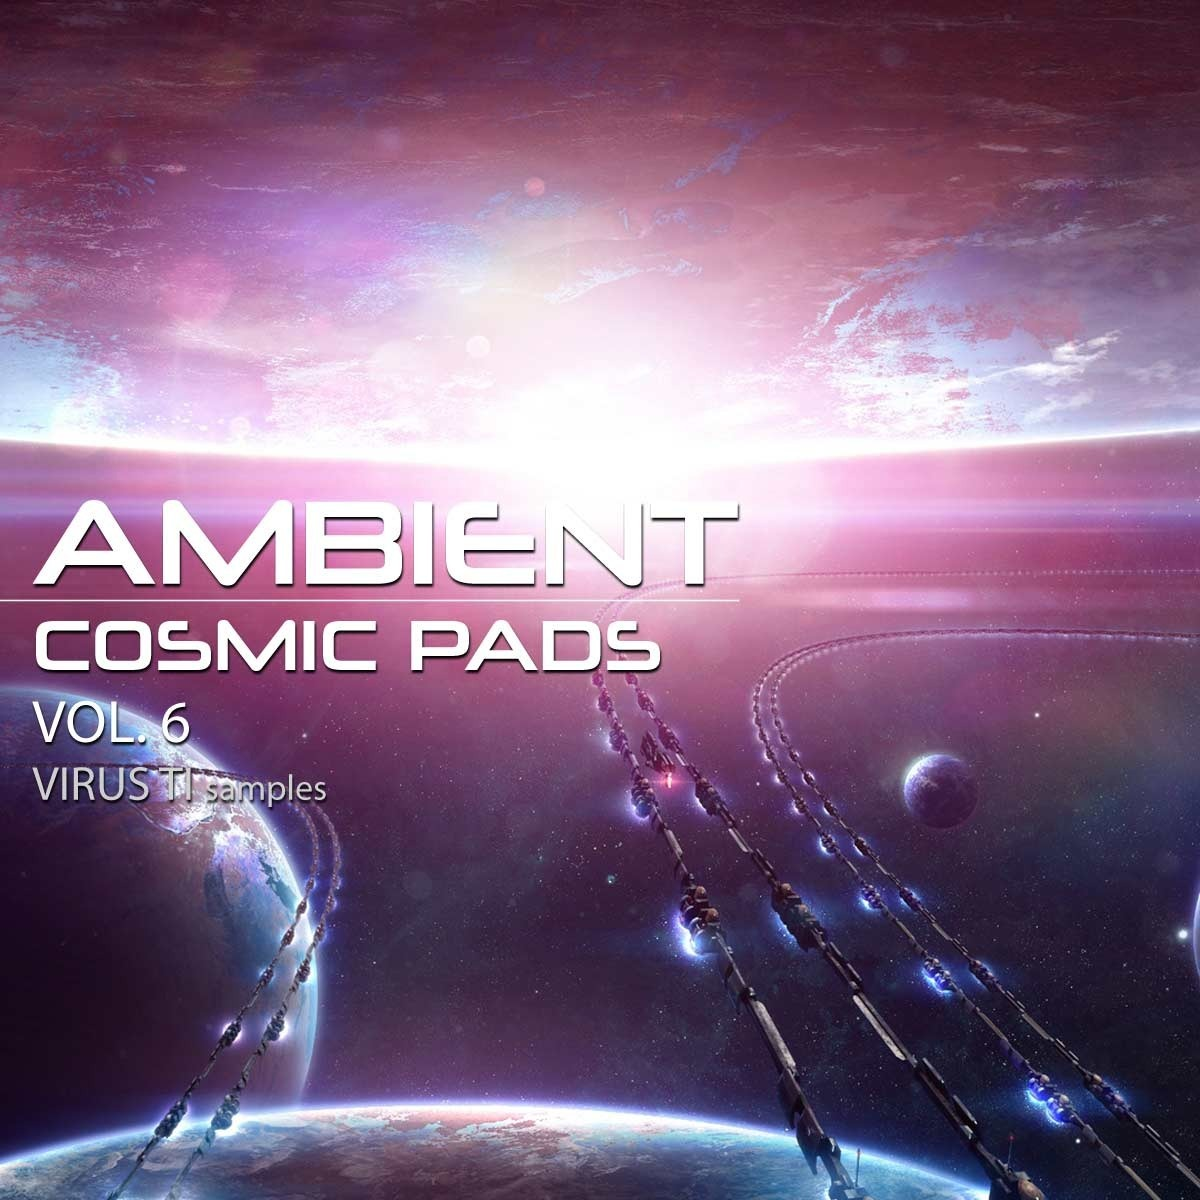 Ambient Cosmic Pads Vol 6